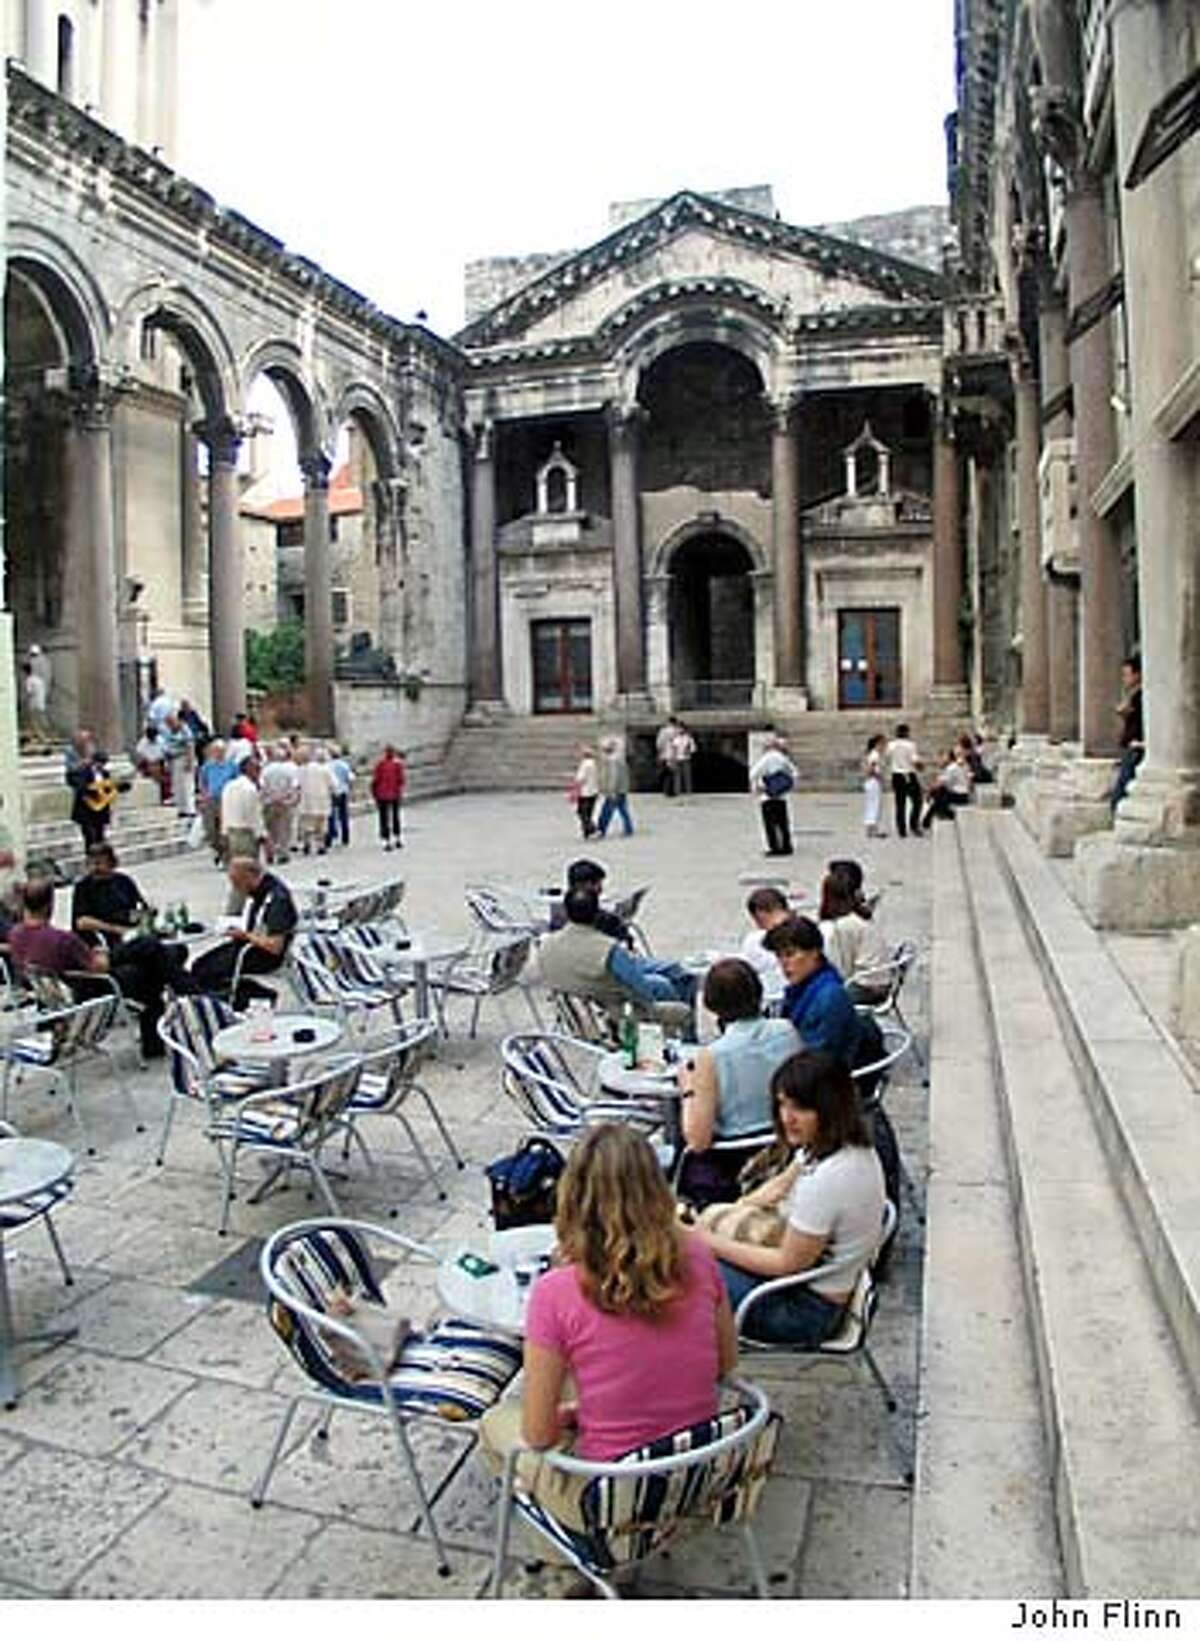 TRAVEL CROATIA -- Cafe in the center of the Roman emporer Diocletian's old palace, which forms the Old Town of Split. Credit: John Flinn